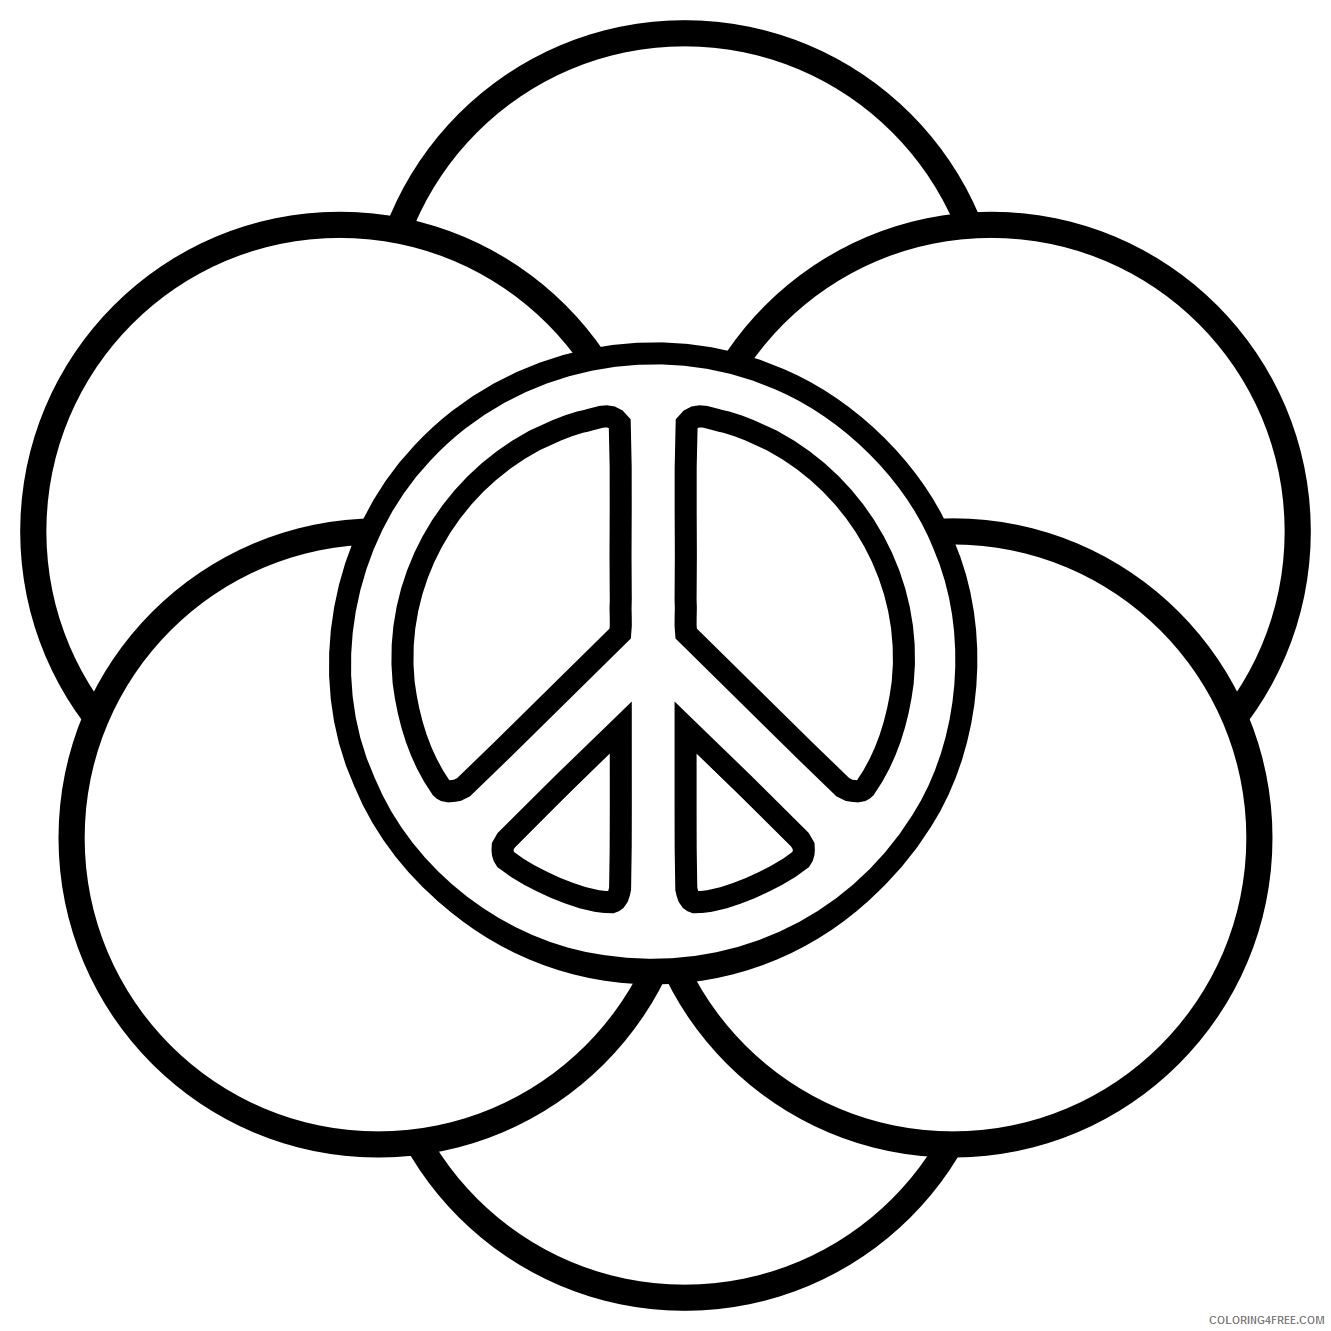 peace sign coloring pages with circles Coloring4free - Coloring4Free.com